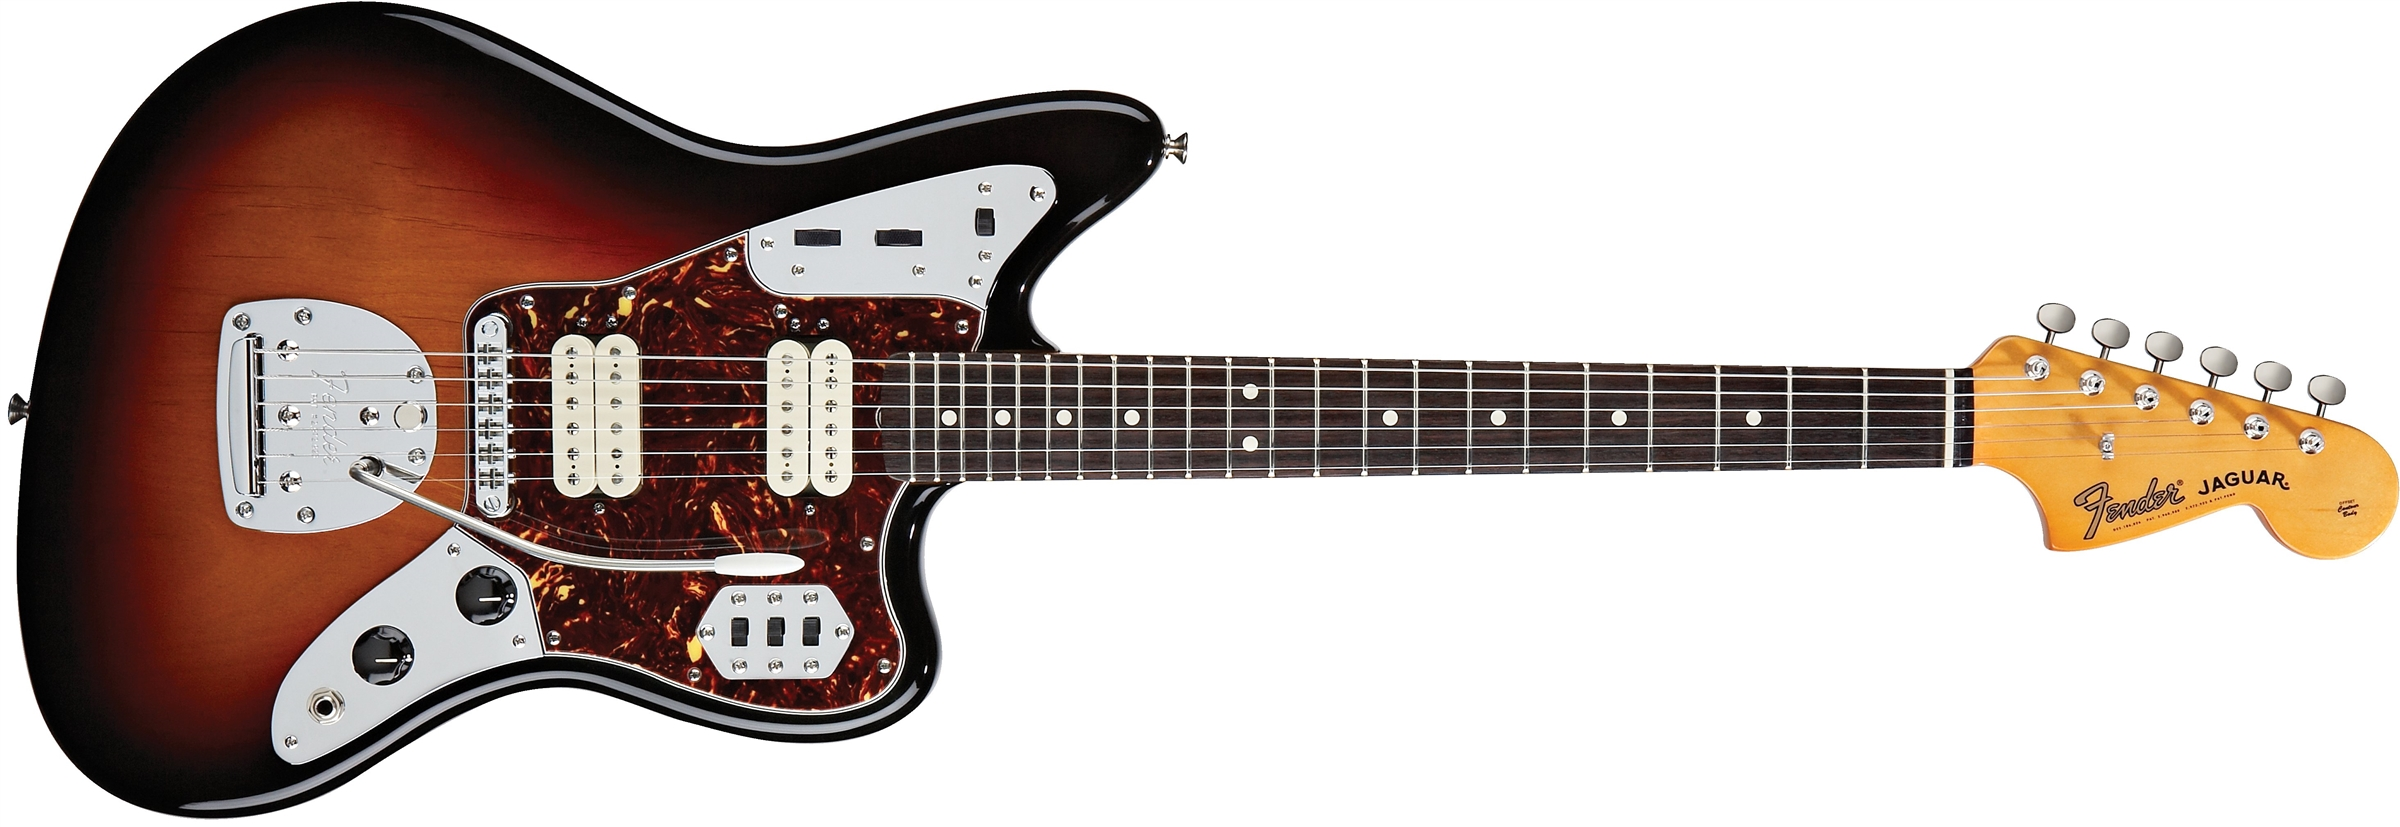 fender classic player jaguar special hh para importar en mercado libre. Black Bedroom Furniture Sets. Home Design Ideas